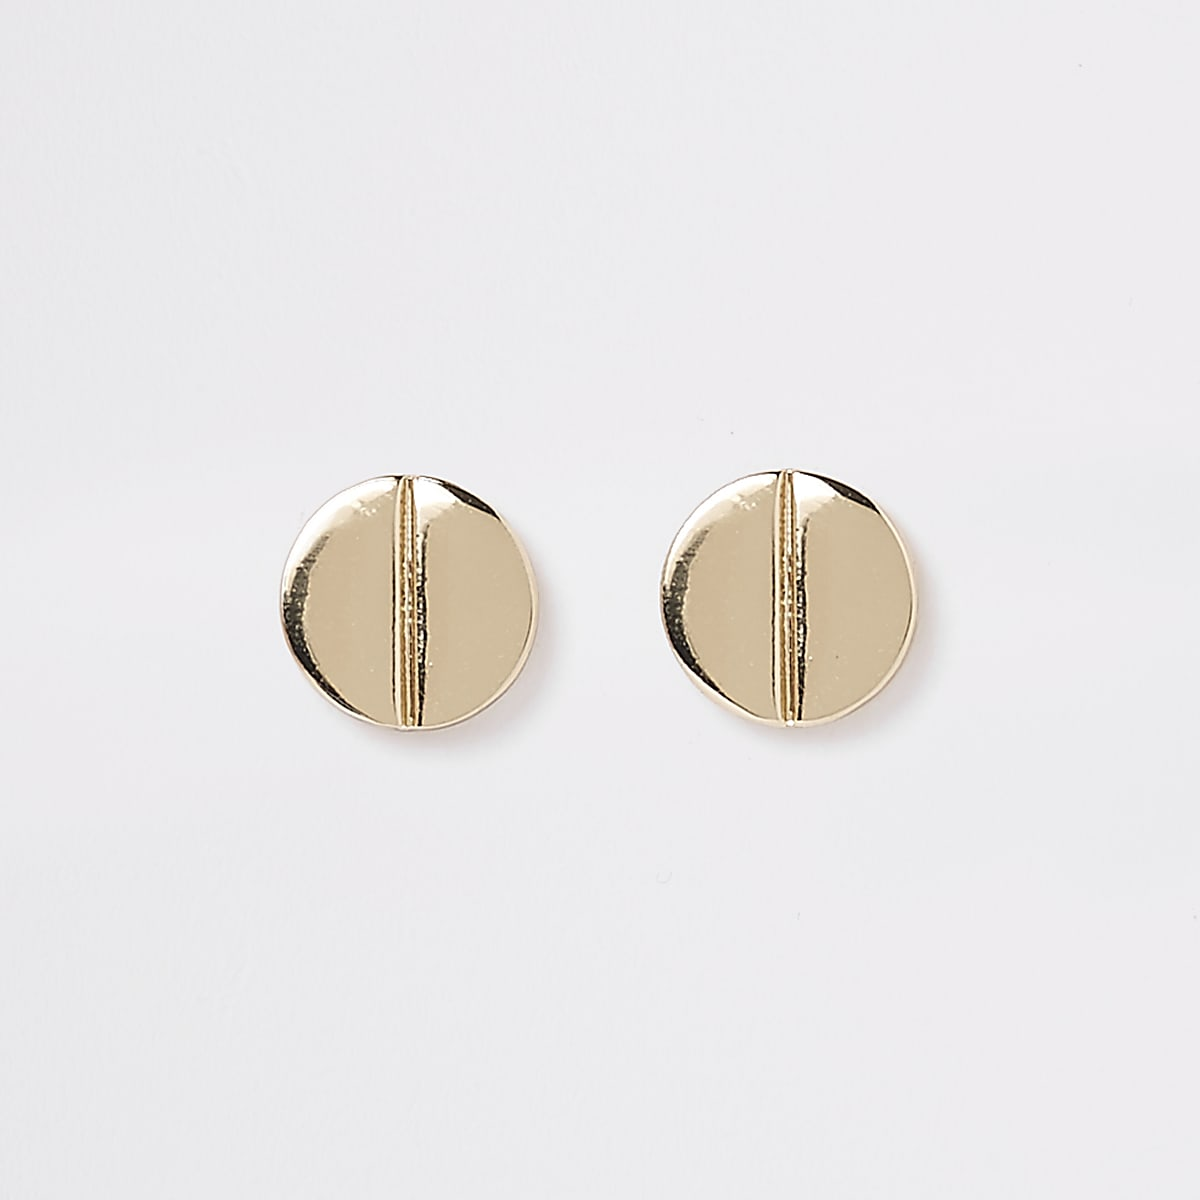 Gold color split stud earrings